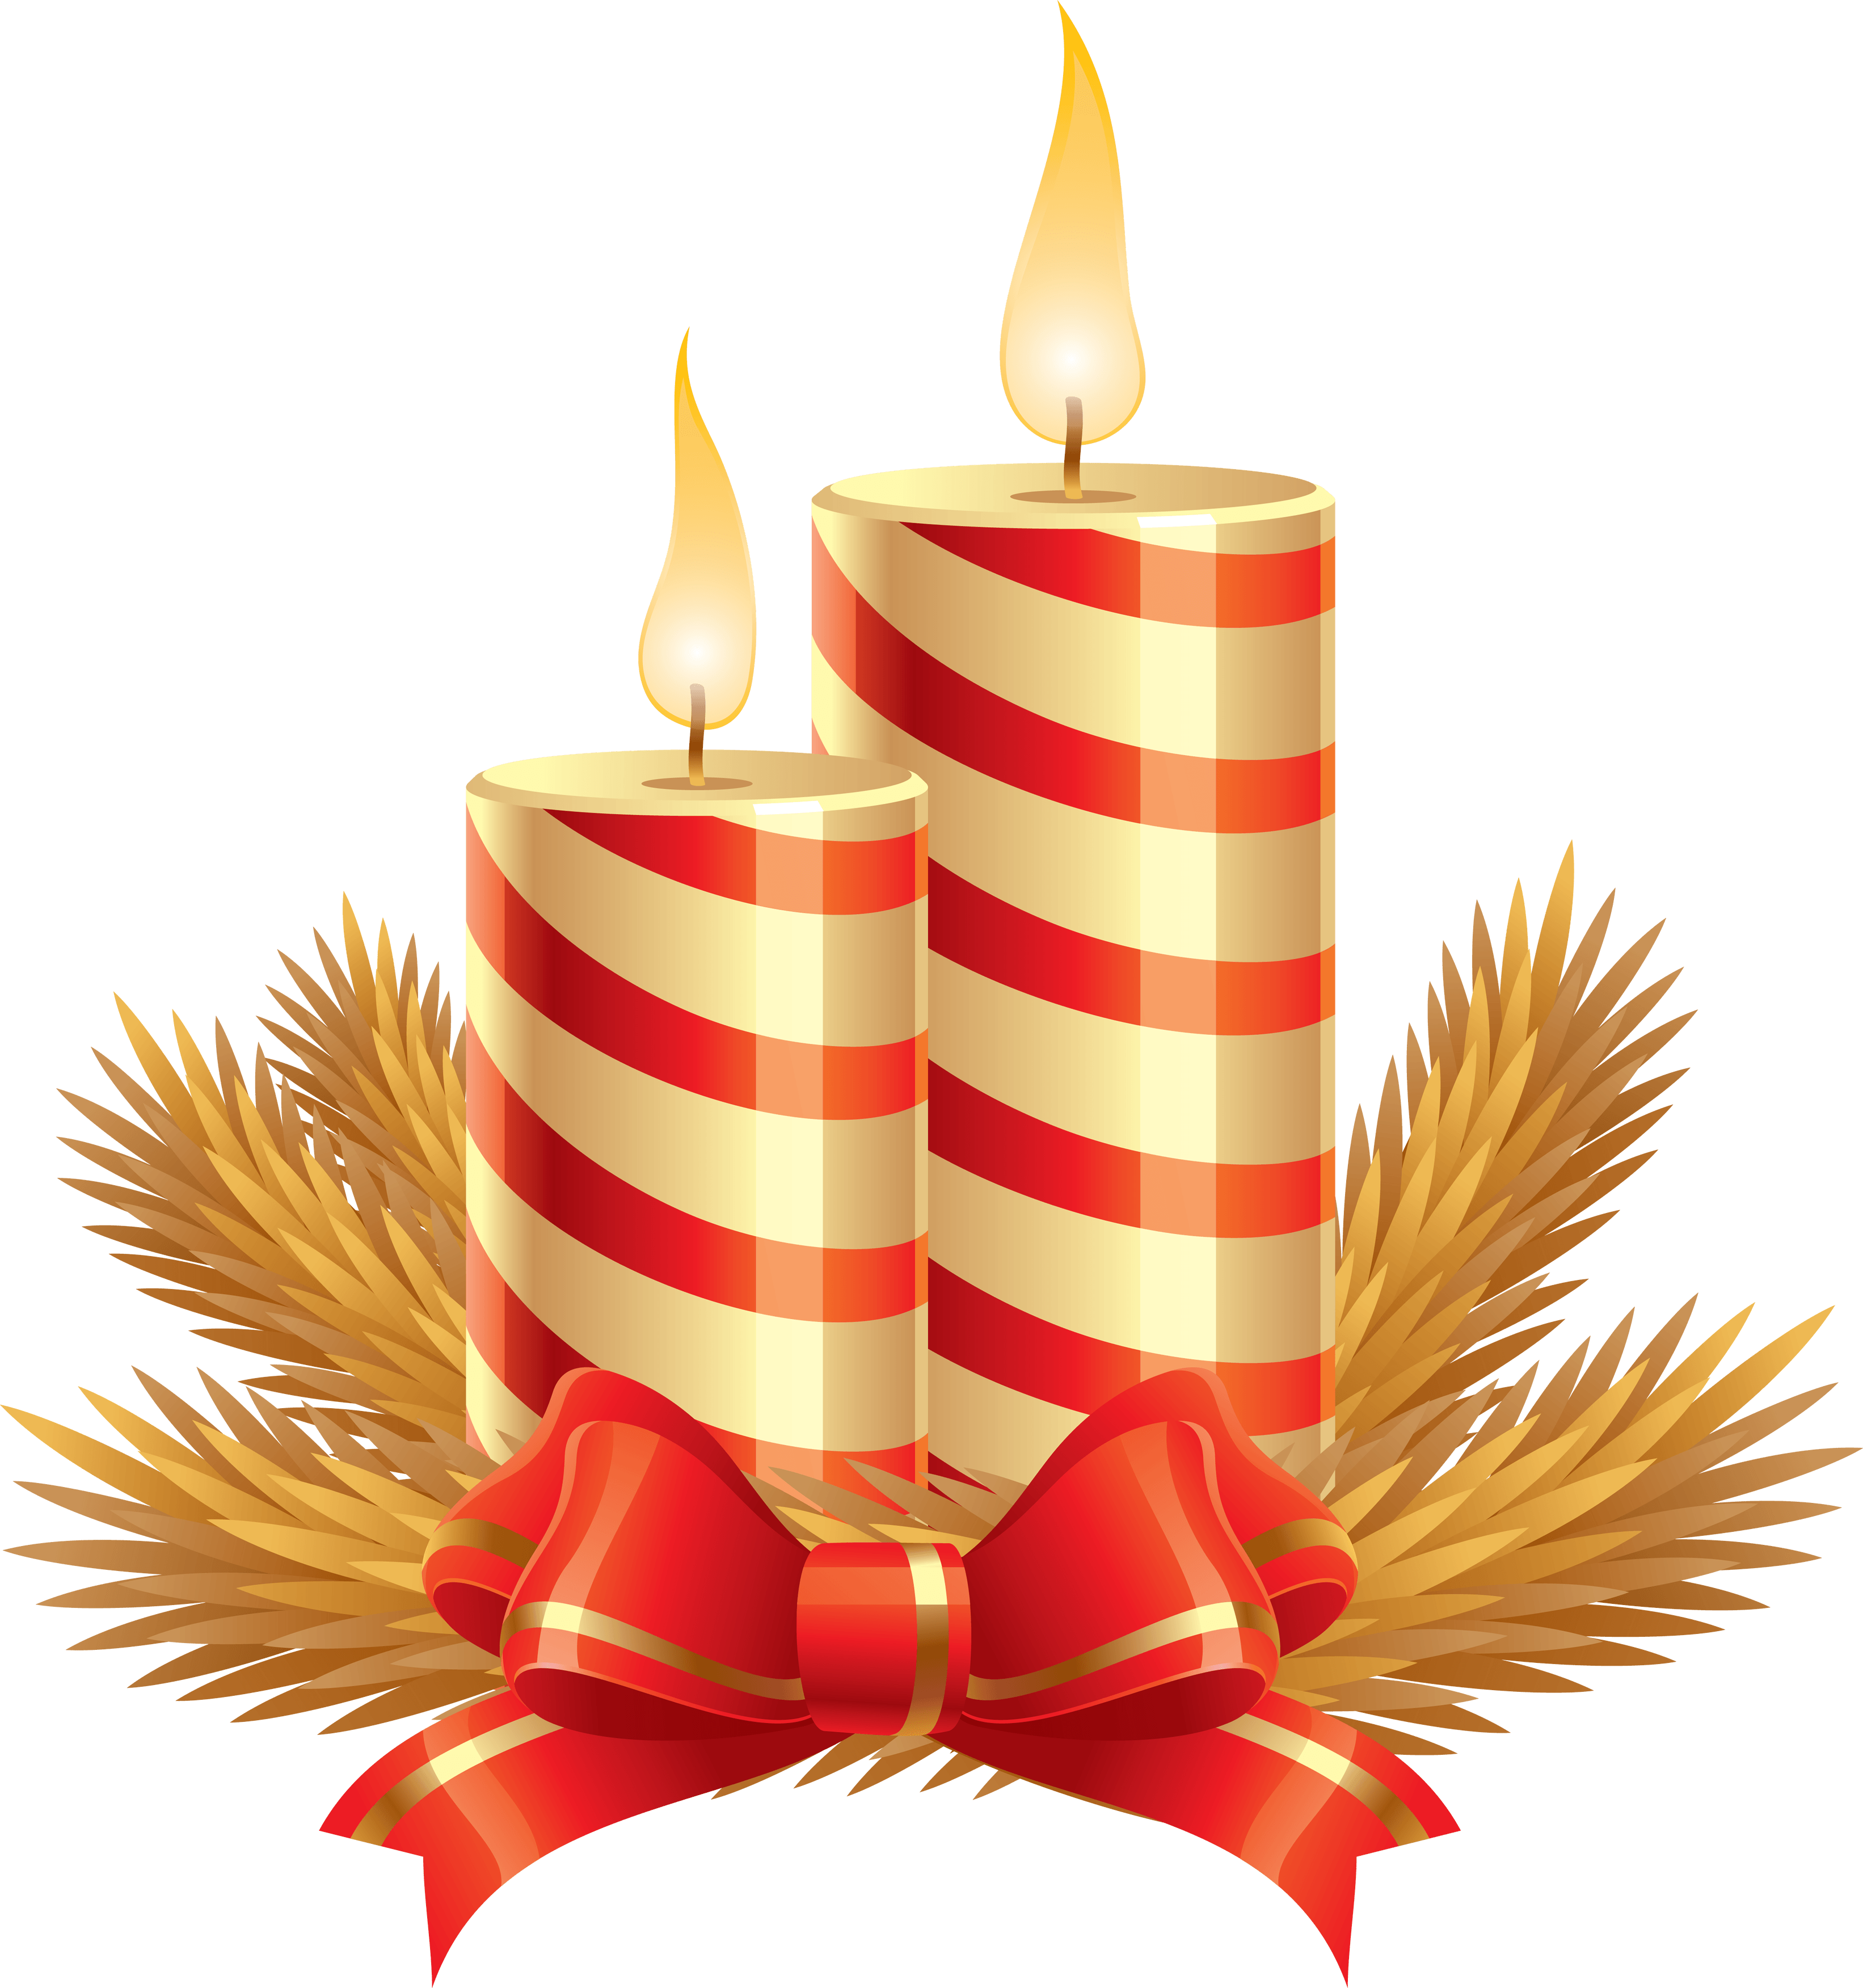 Download Christmas Candle Png Image HQ PNG Image.